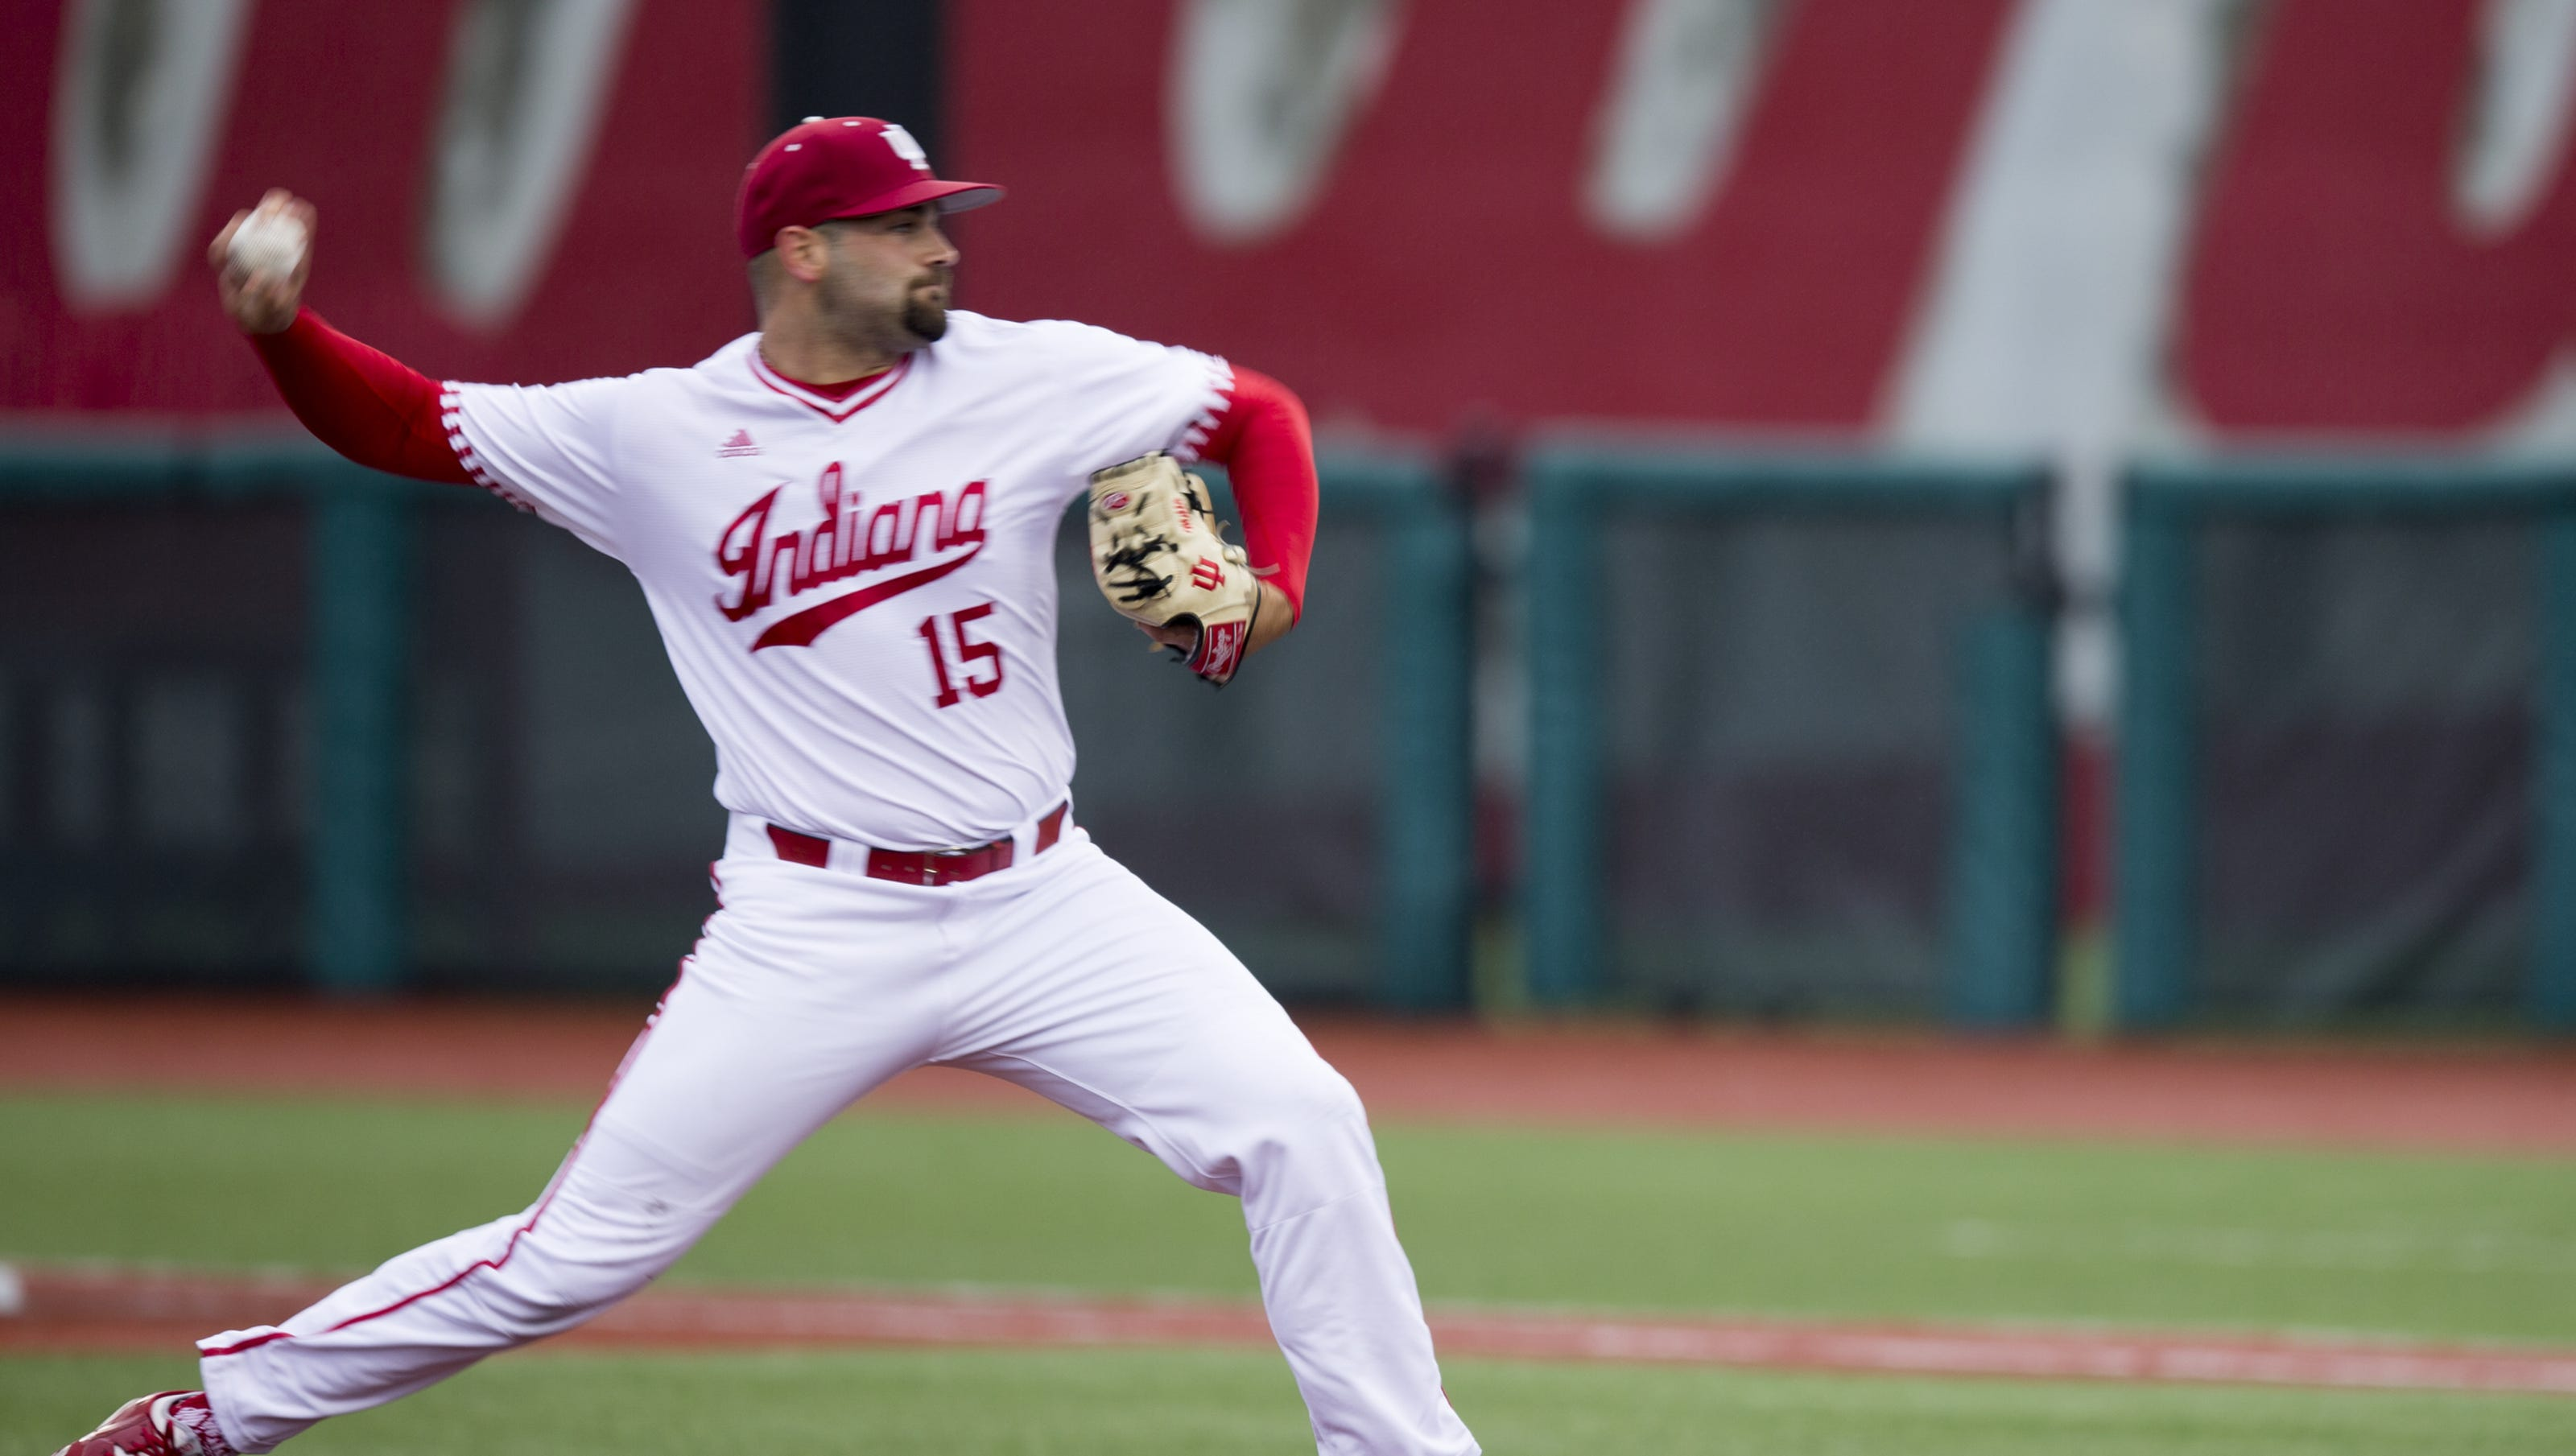 ncaa baseball: indiana's pauly milto dices up texas southern hitters